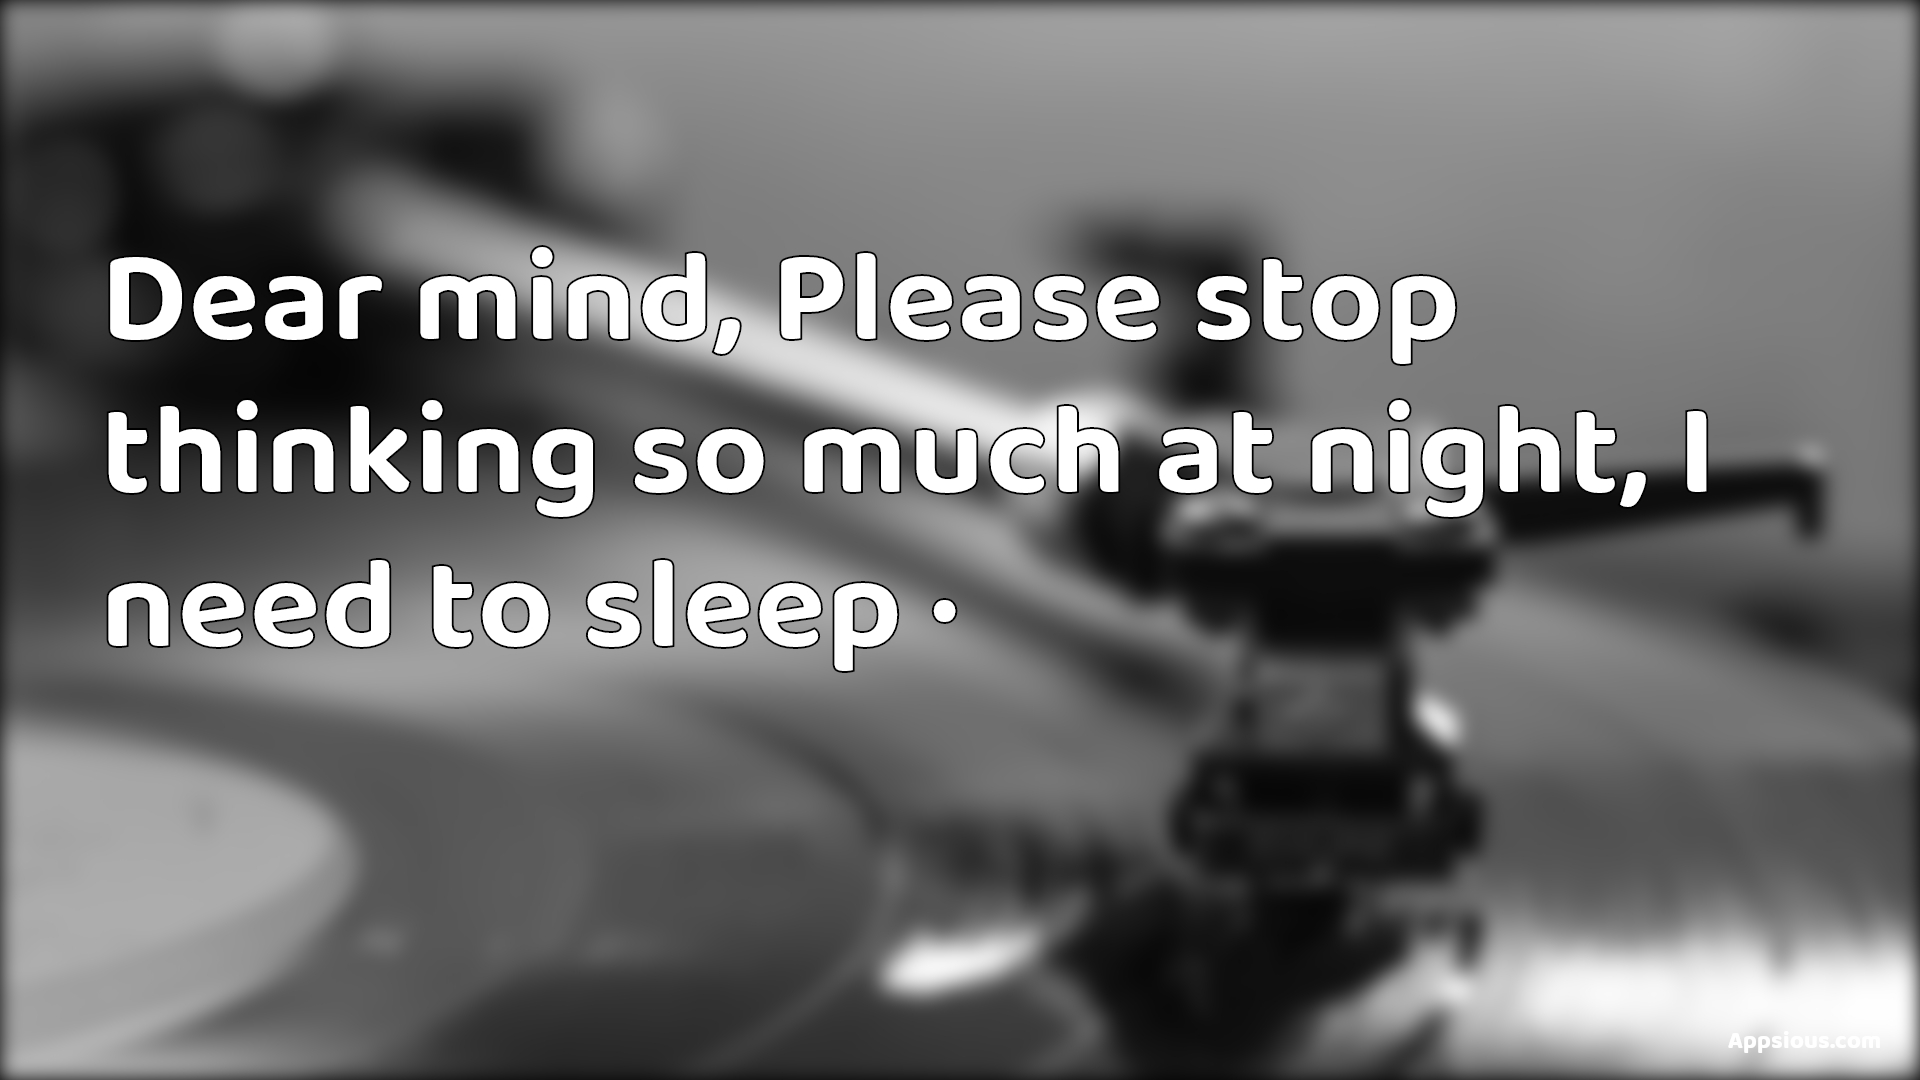 Dear mind, Please stop thinking so much at night, I need to sleep ·